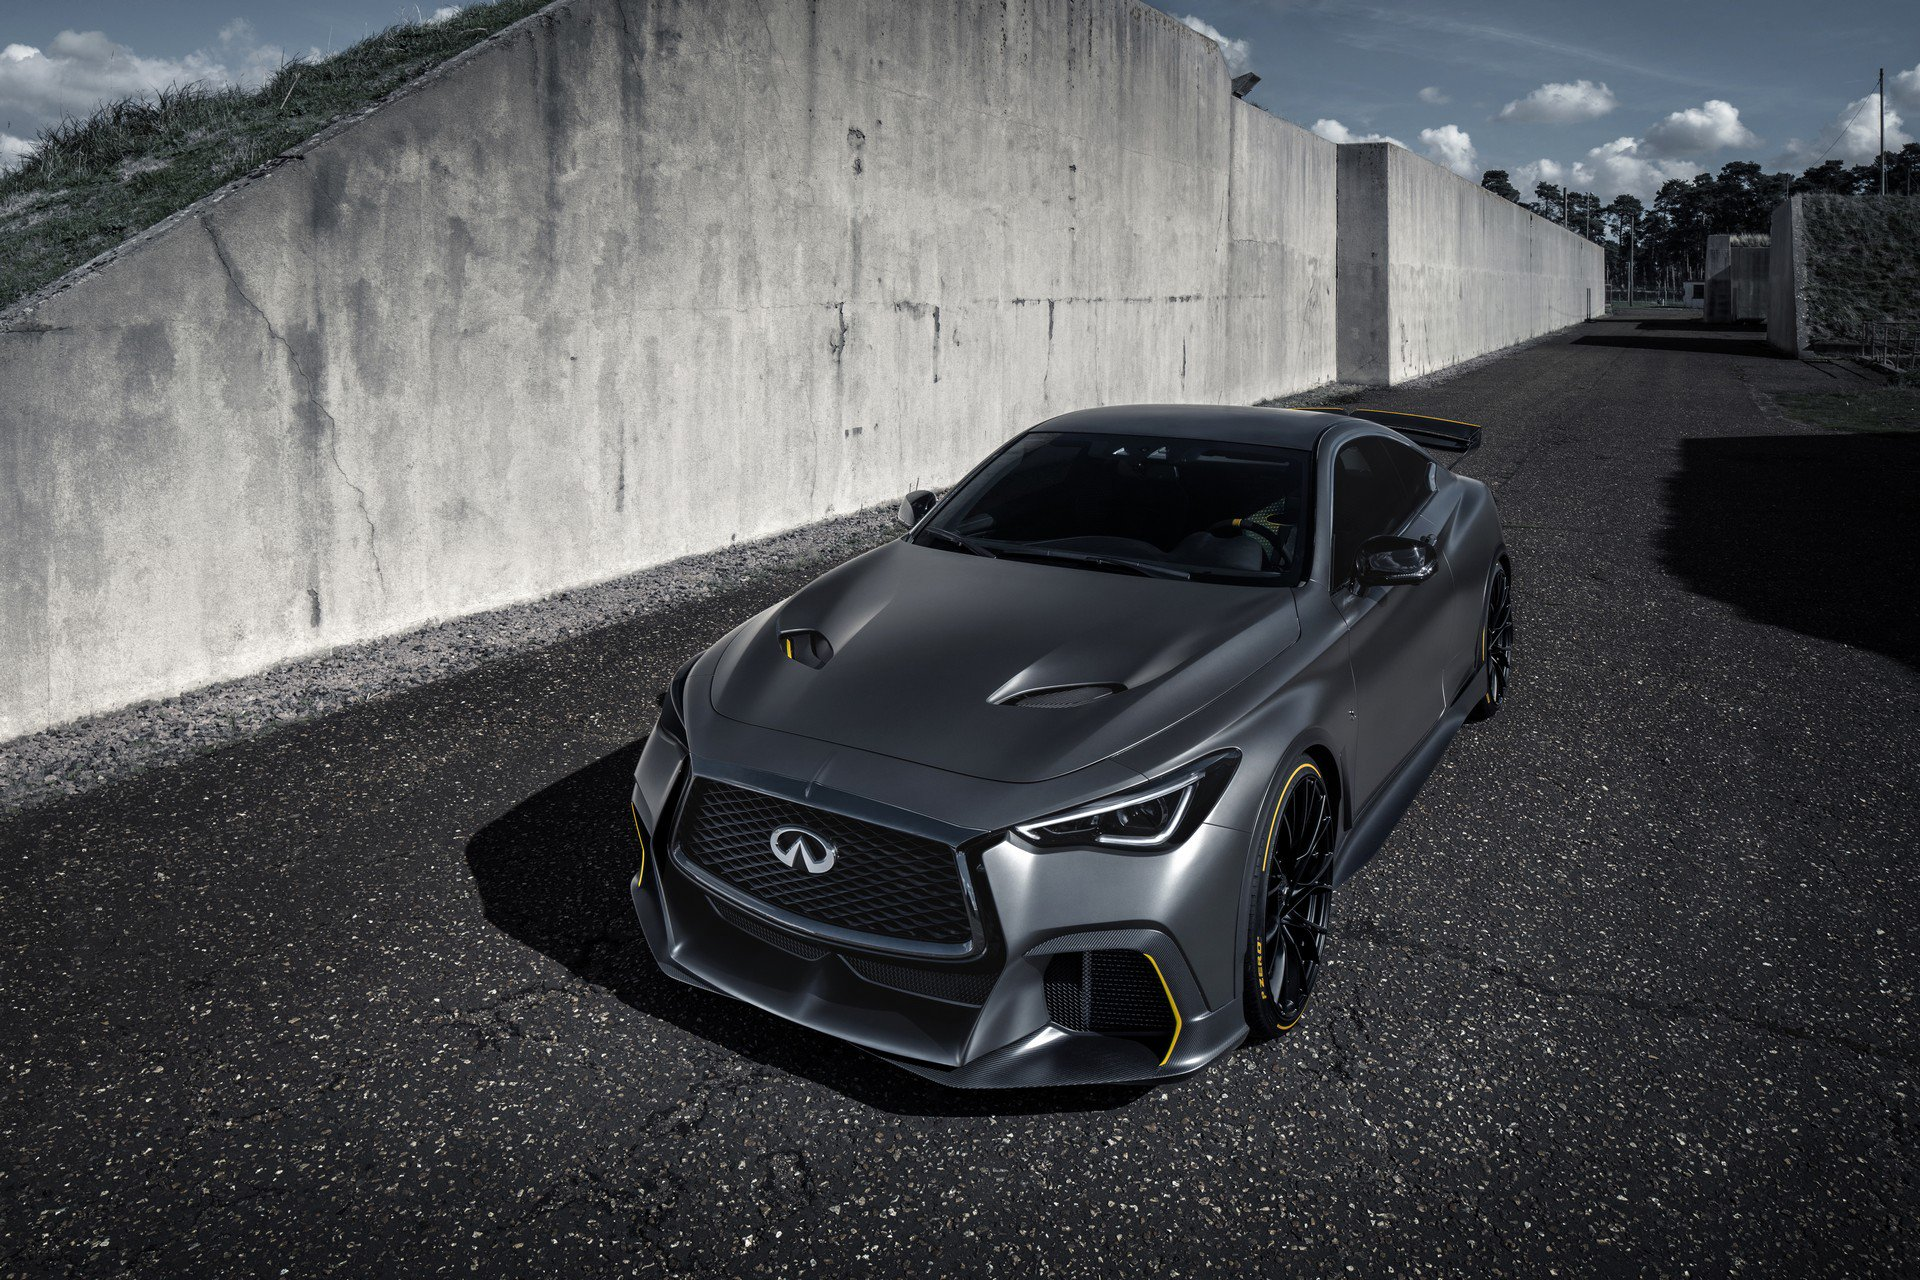 Infiniti Project Black S Prototype (4)